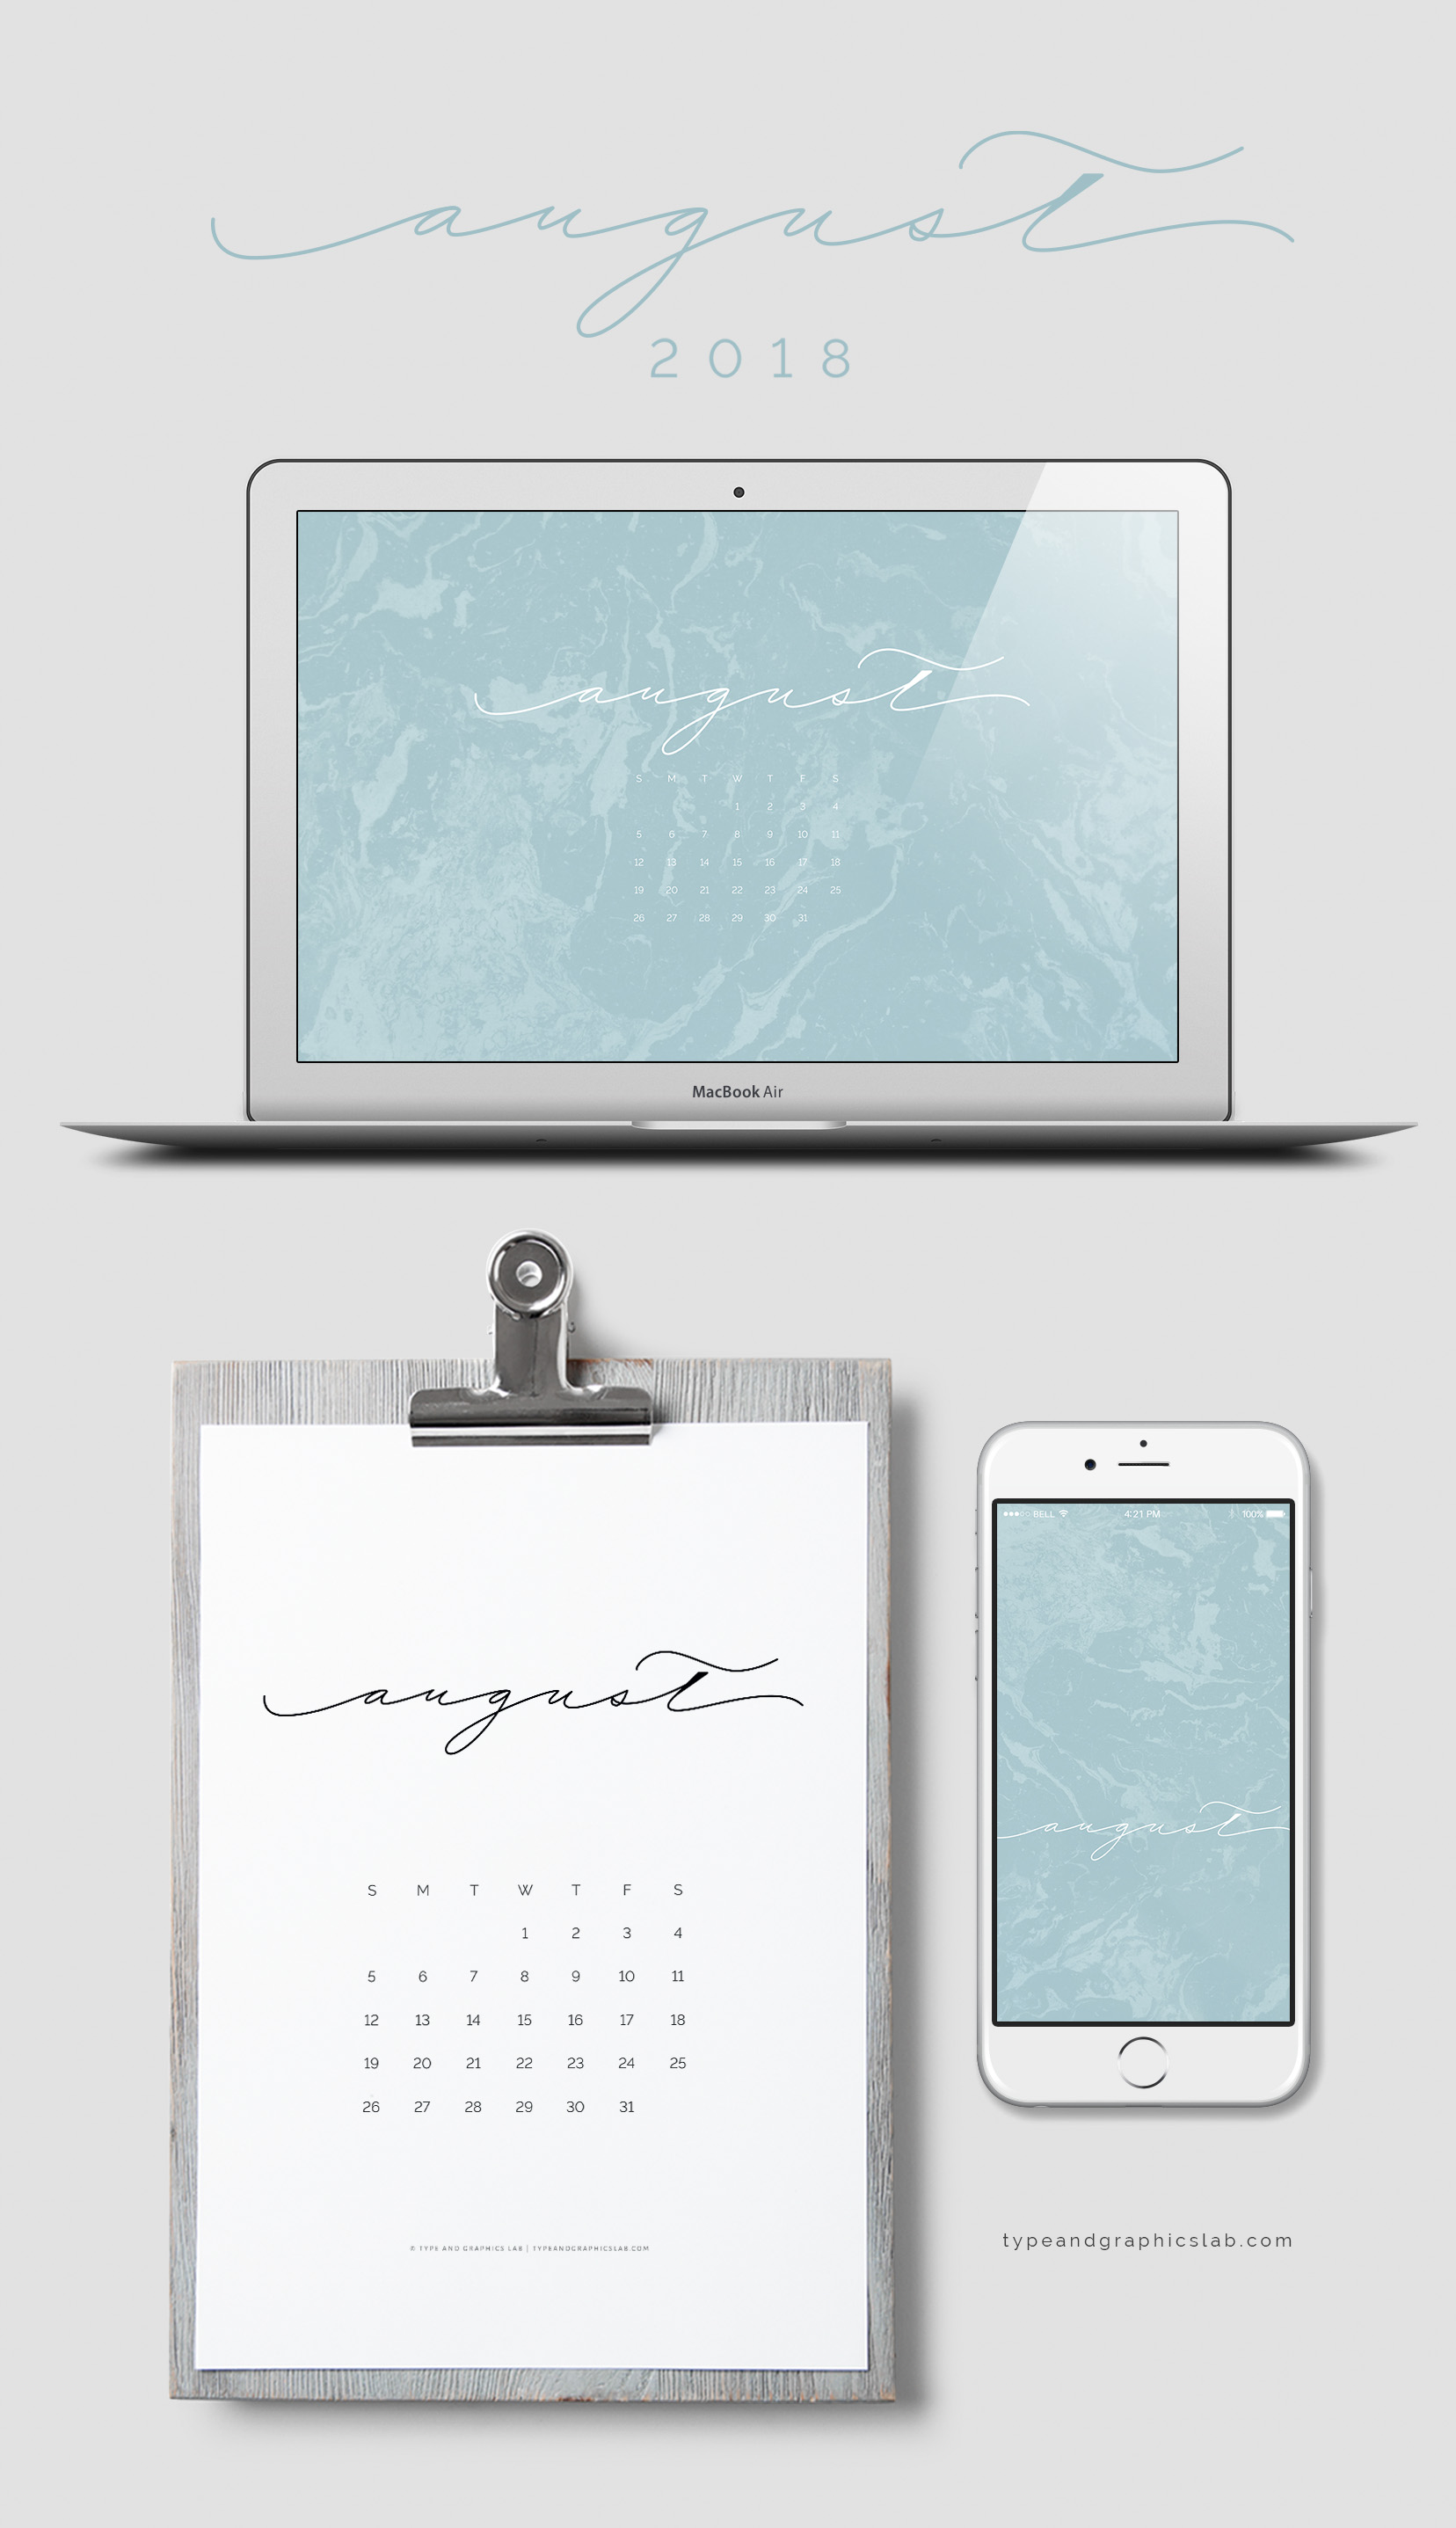 Download free desktop, mobile, and printable calendar for August 2018 |©typeandgraphicslab.com | For personal use only